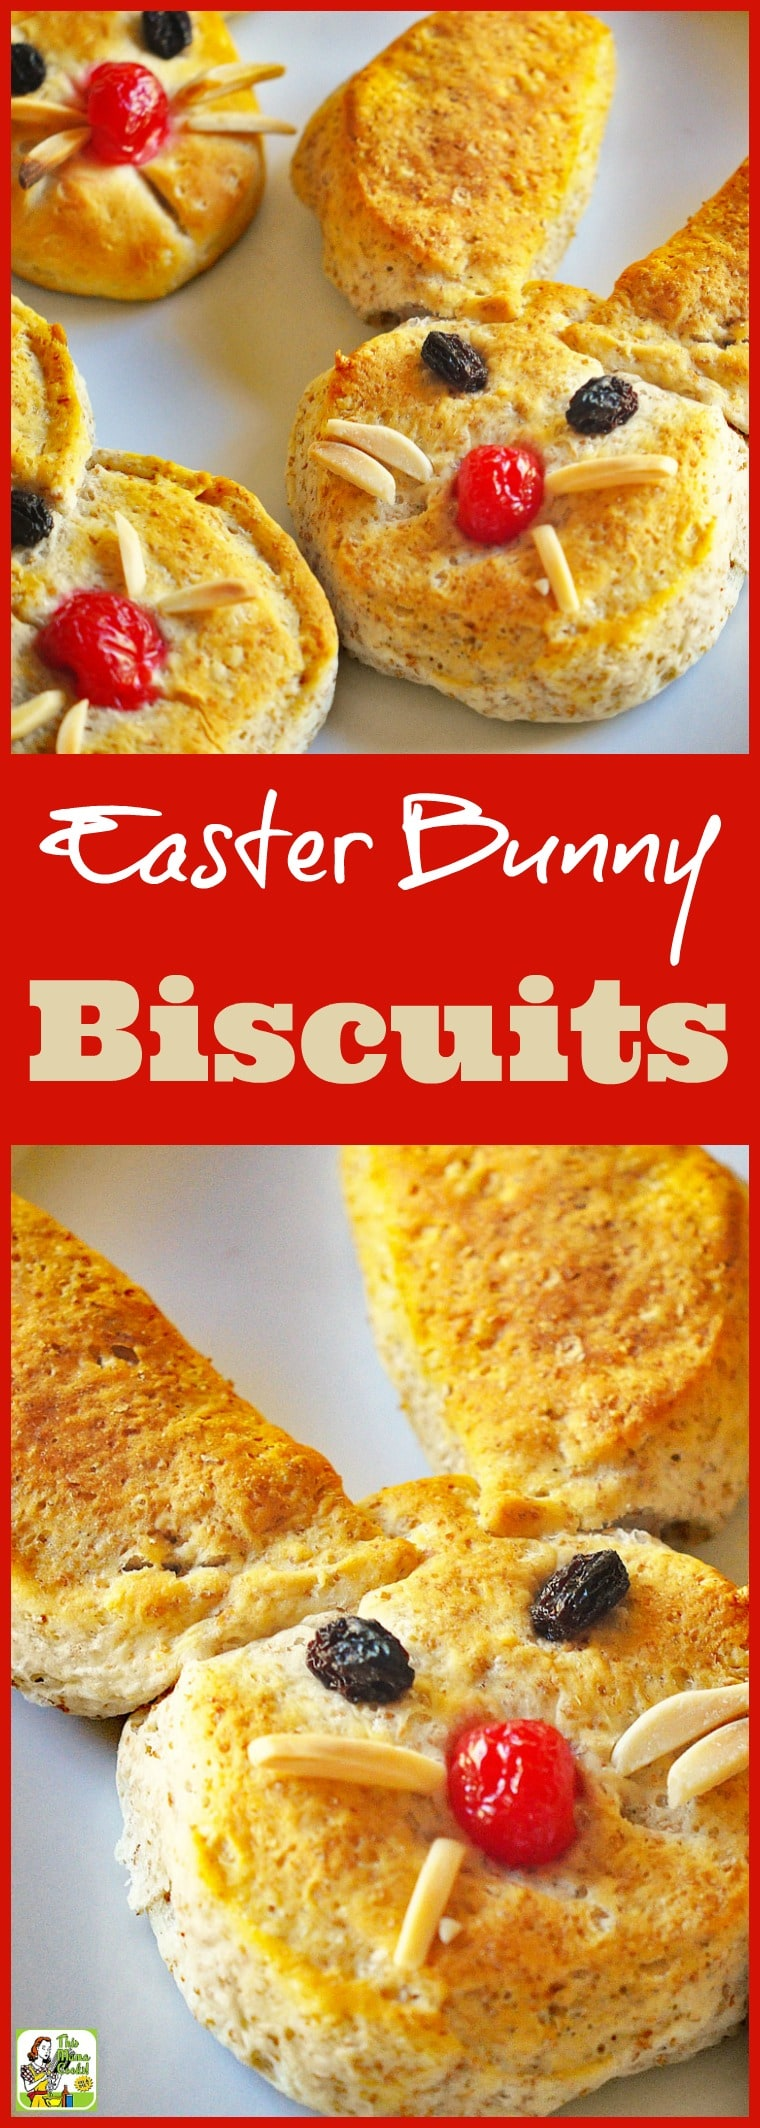 Easter Bunny Biscuits makes the perfect Easter breakfast or snack. Bake up these simple Easter biscuits with your kids or grandkids. This easy Easter bunny biscuits recipe is made with refrigerated biscuit dough. #Easter #bunny #biscuits #kidfriendly #EasterBunny #snack #breakfast #baking #EasterBrunch